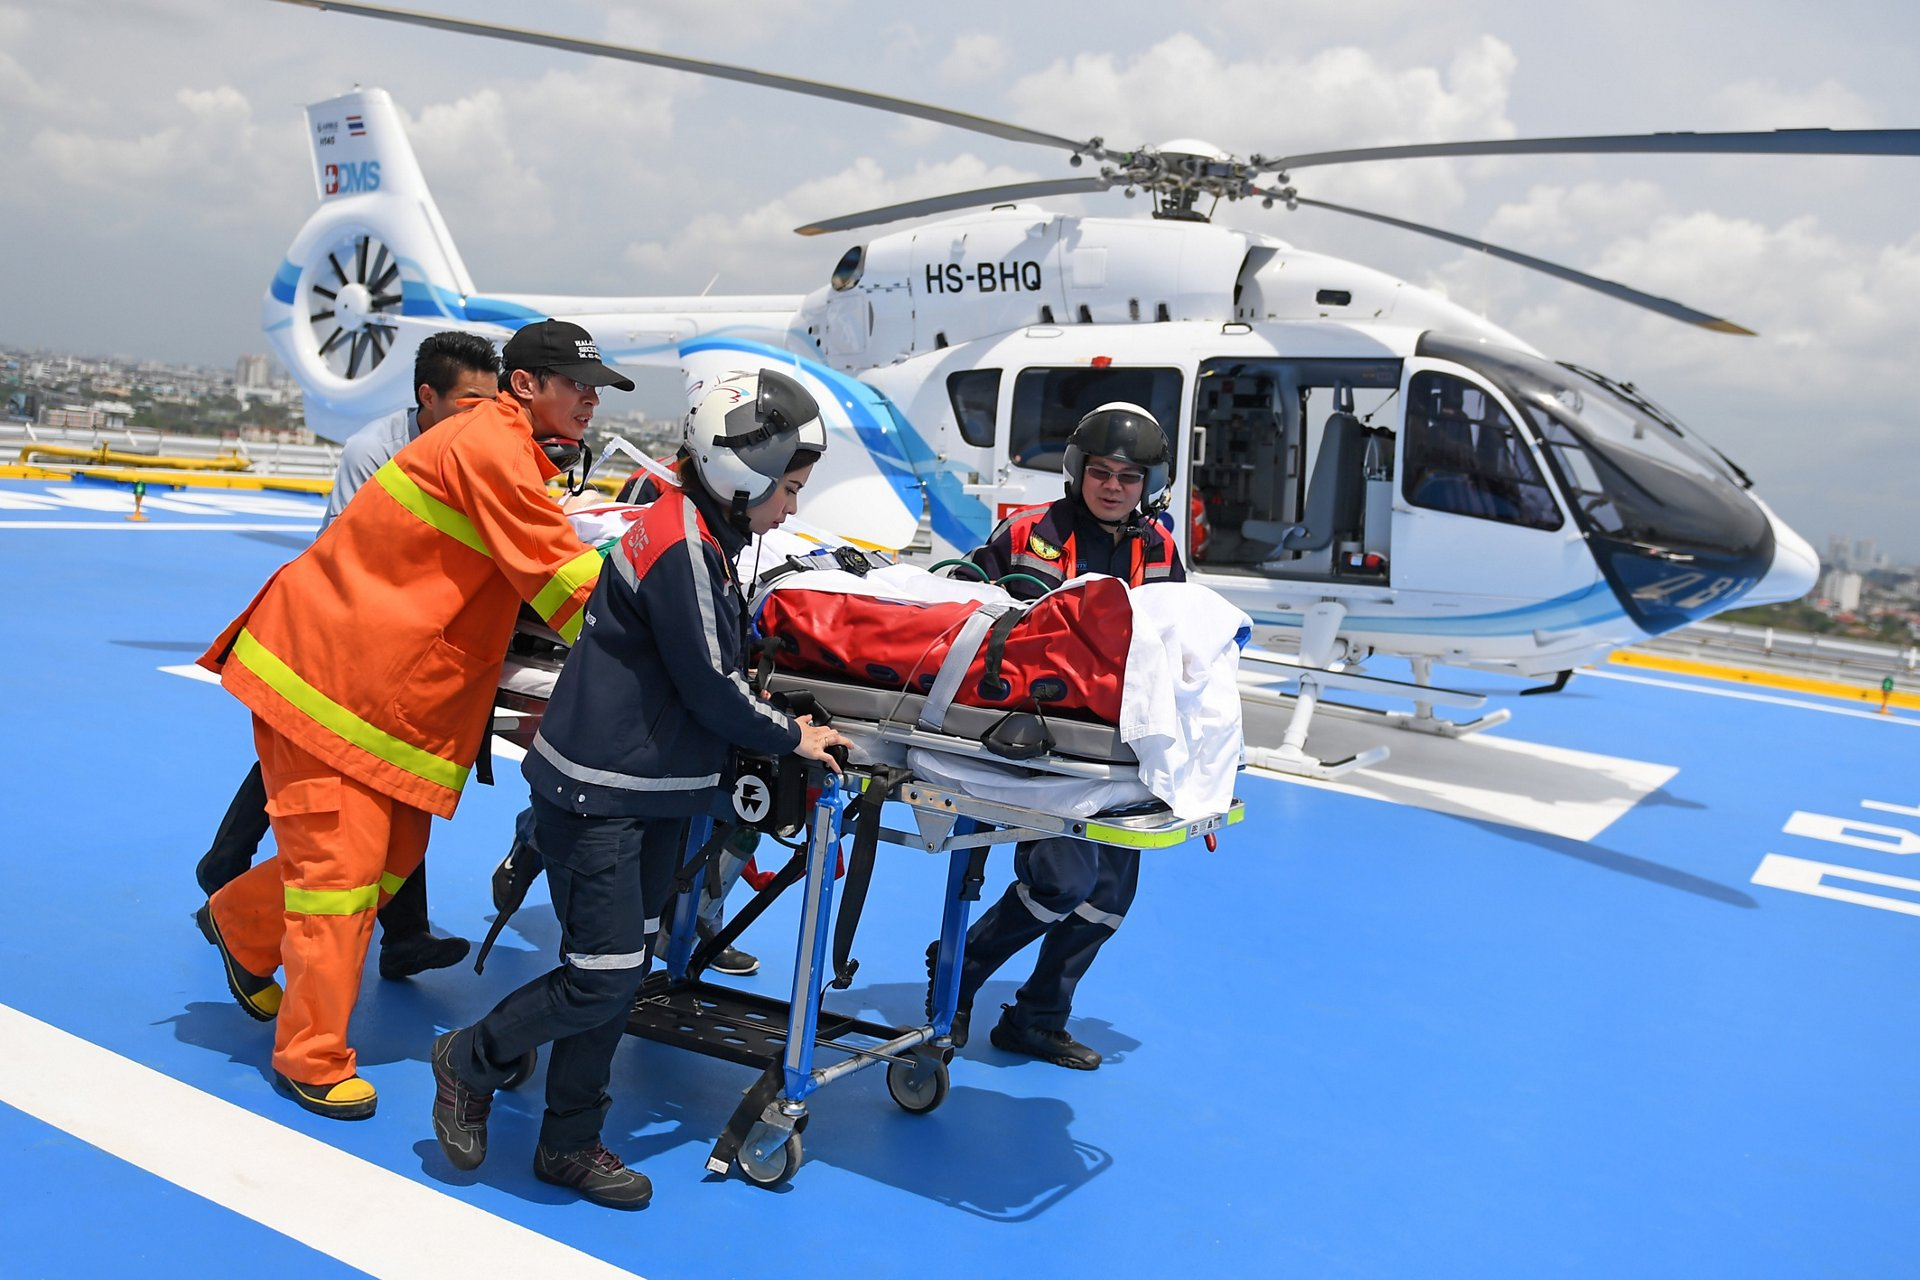 BHS in Thailand has been operating medical flights since 2007 with an H145.